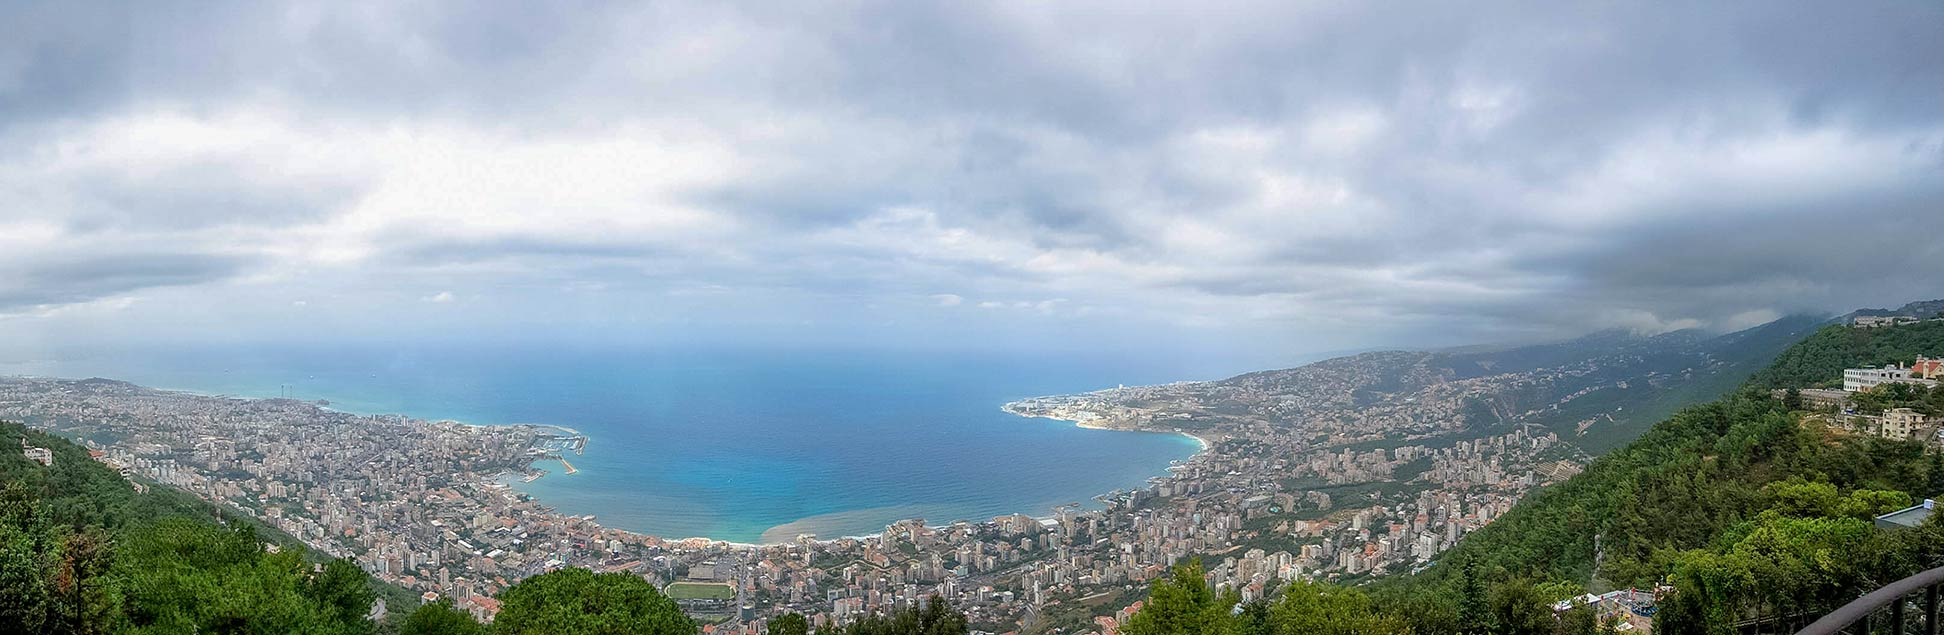 Panorama view of Jounieh and Jounieh Bay from Harissa, Mount Lebanon